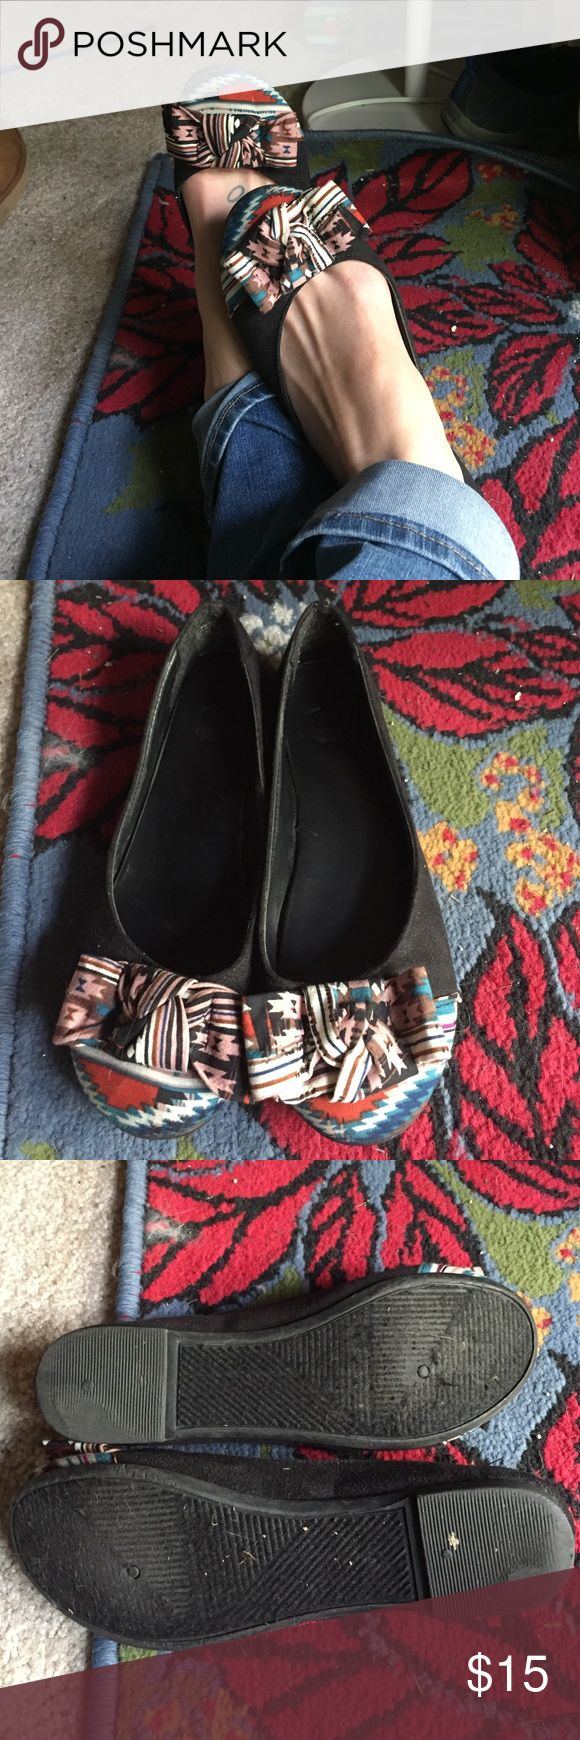 Aztec flats Gorgeous Aztec flats. I absolutely love these, they're just a tad too small for me :( so cute and go with most everything! Hardly used, in great condition Route 66 Shoes Flats & Loafers